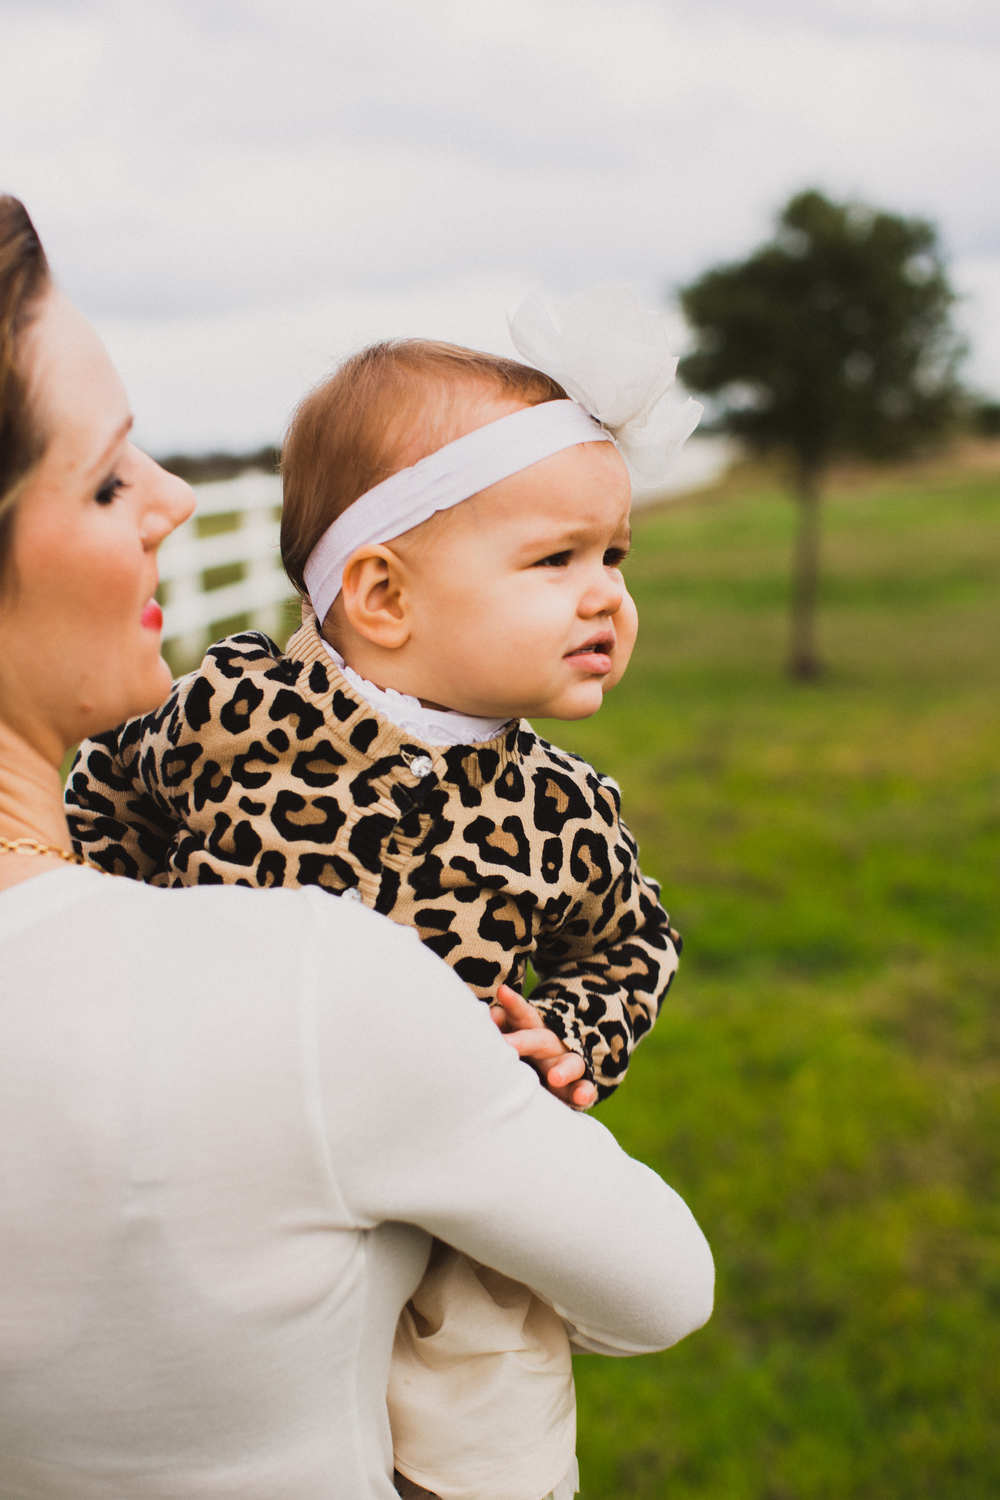 houstonfamilyphotographer-h2014-greer-goforthfam-170.jpg